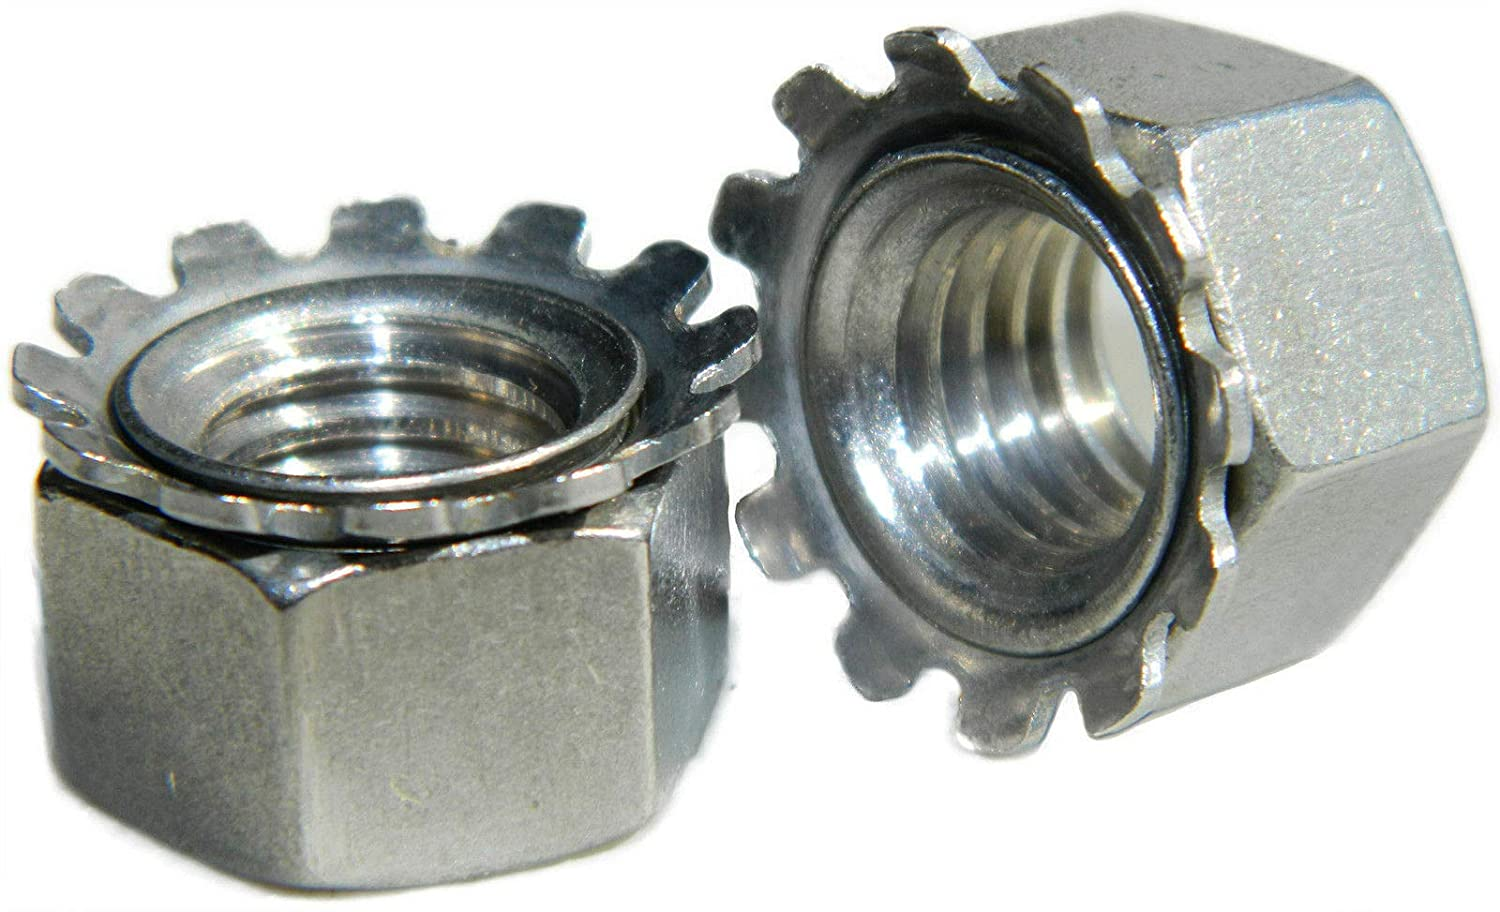 Stainless Steel Keps K-L Lock Nut with Washer Free 2- Indefinitely 1 Spinning Cheap mail order specialty store